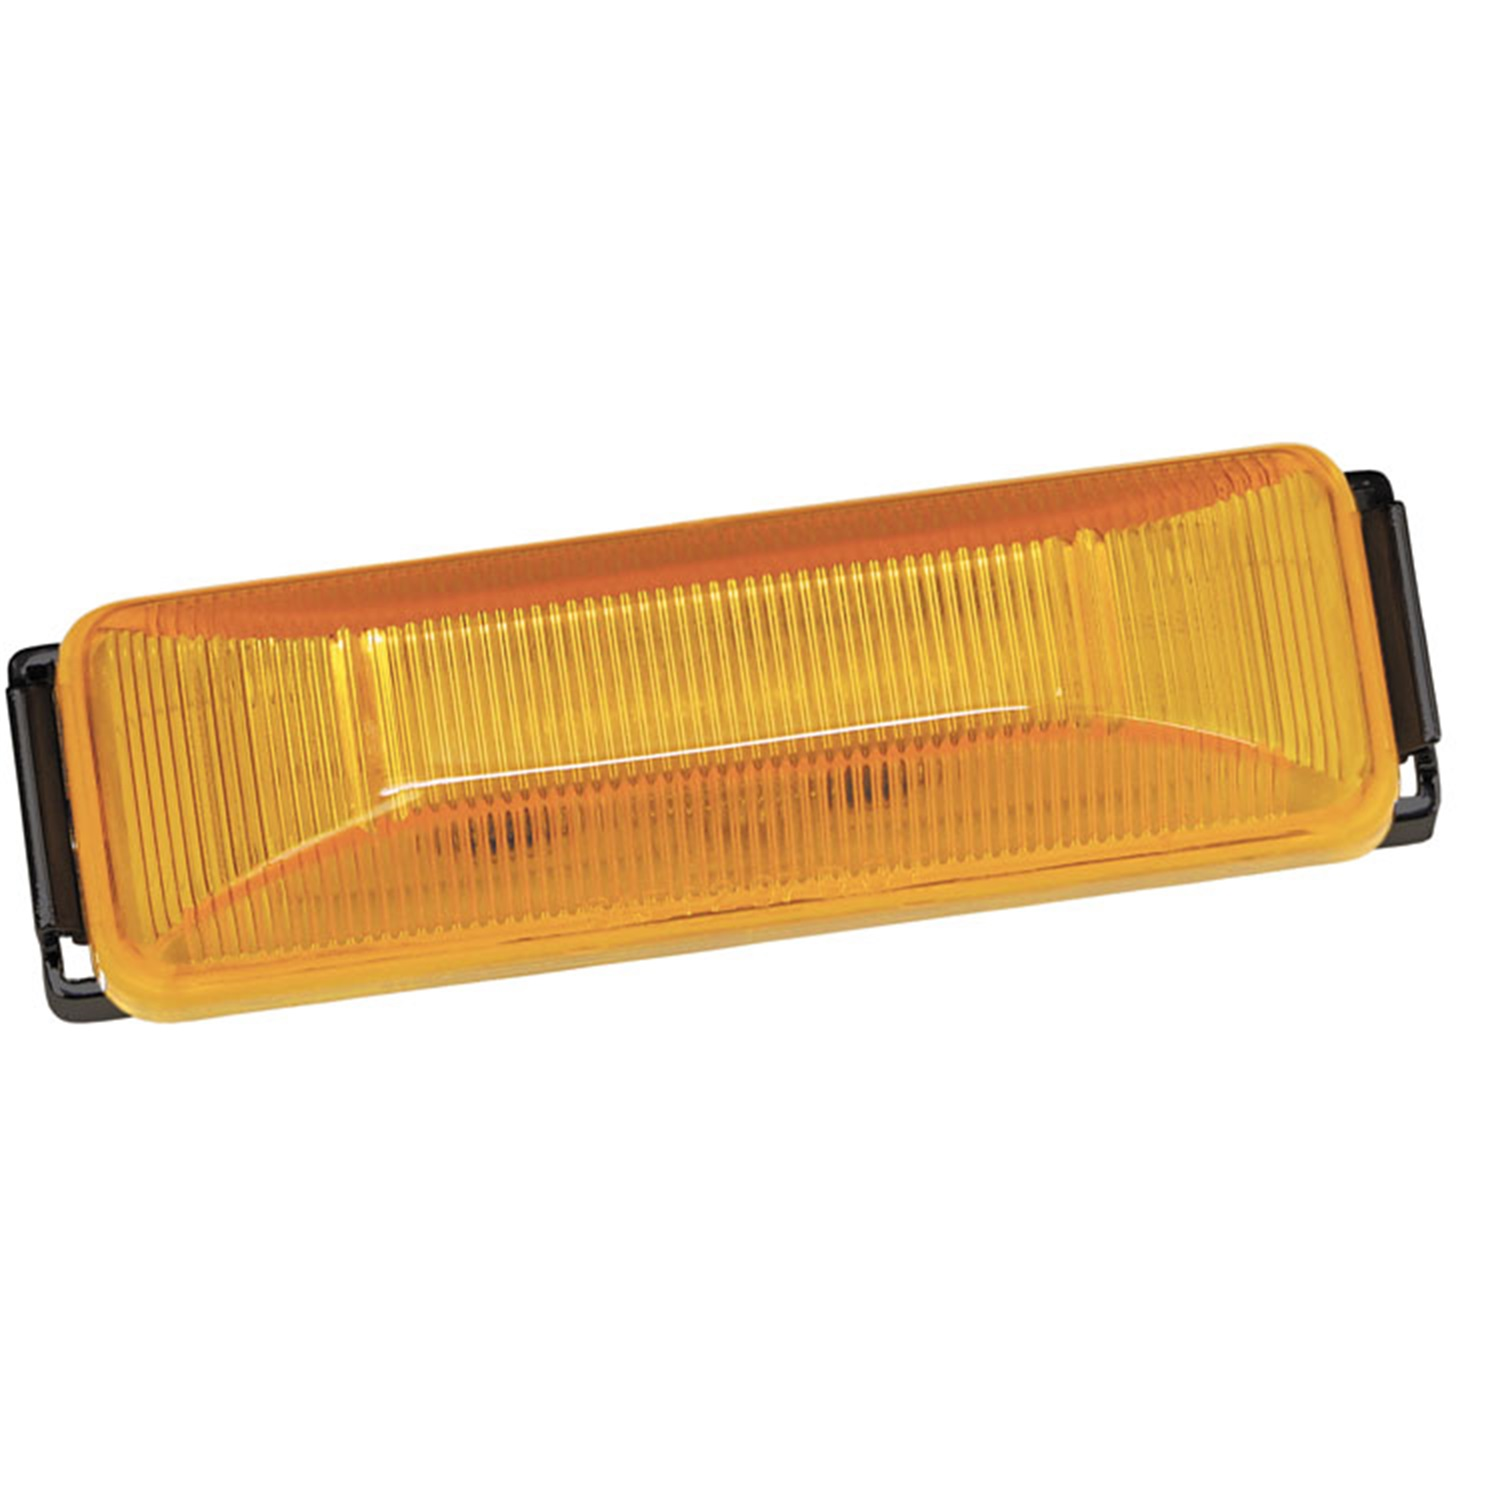 Bargman 42-38-034 38 Series Trailer Light - image 2 of 2